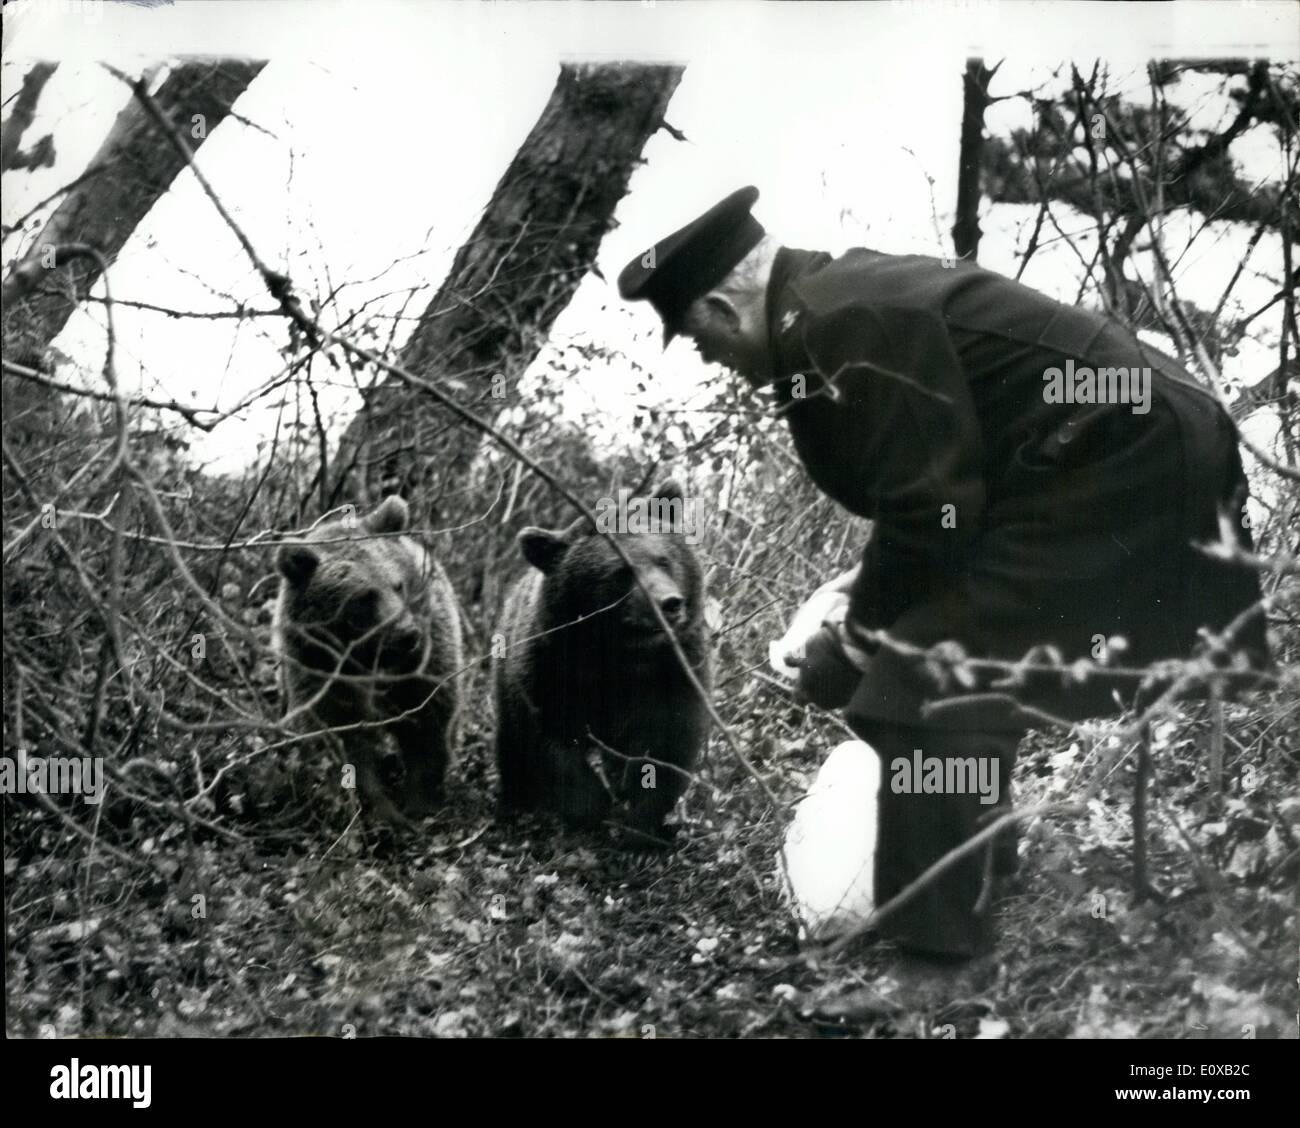 Jan. 01, 1966 - Bears still at large on the isle of Wight; Nikita and Valentina, two Russian bears have for 12 days evaded capture, after escaping from a children's zoo at Ryde, Isle of Wight. So far they have defied the efforts of assorted police, R.S.P.C.A. and zoo man to catch them. Yesterday, Mr. Harold Sister, the island's bear defying R.S.P.C.A - Stock Image